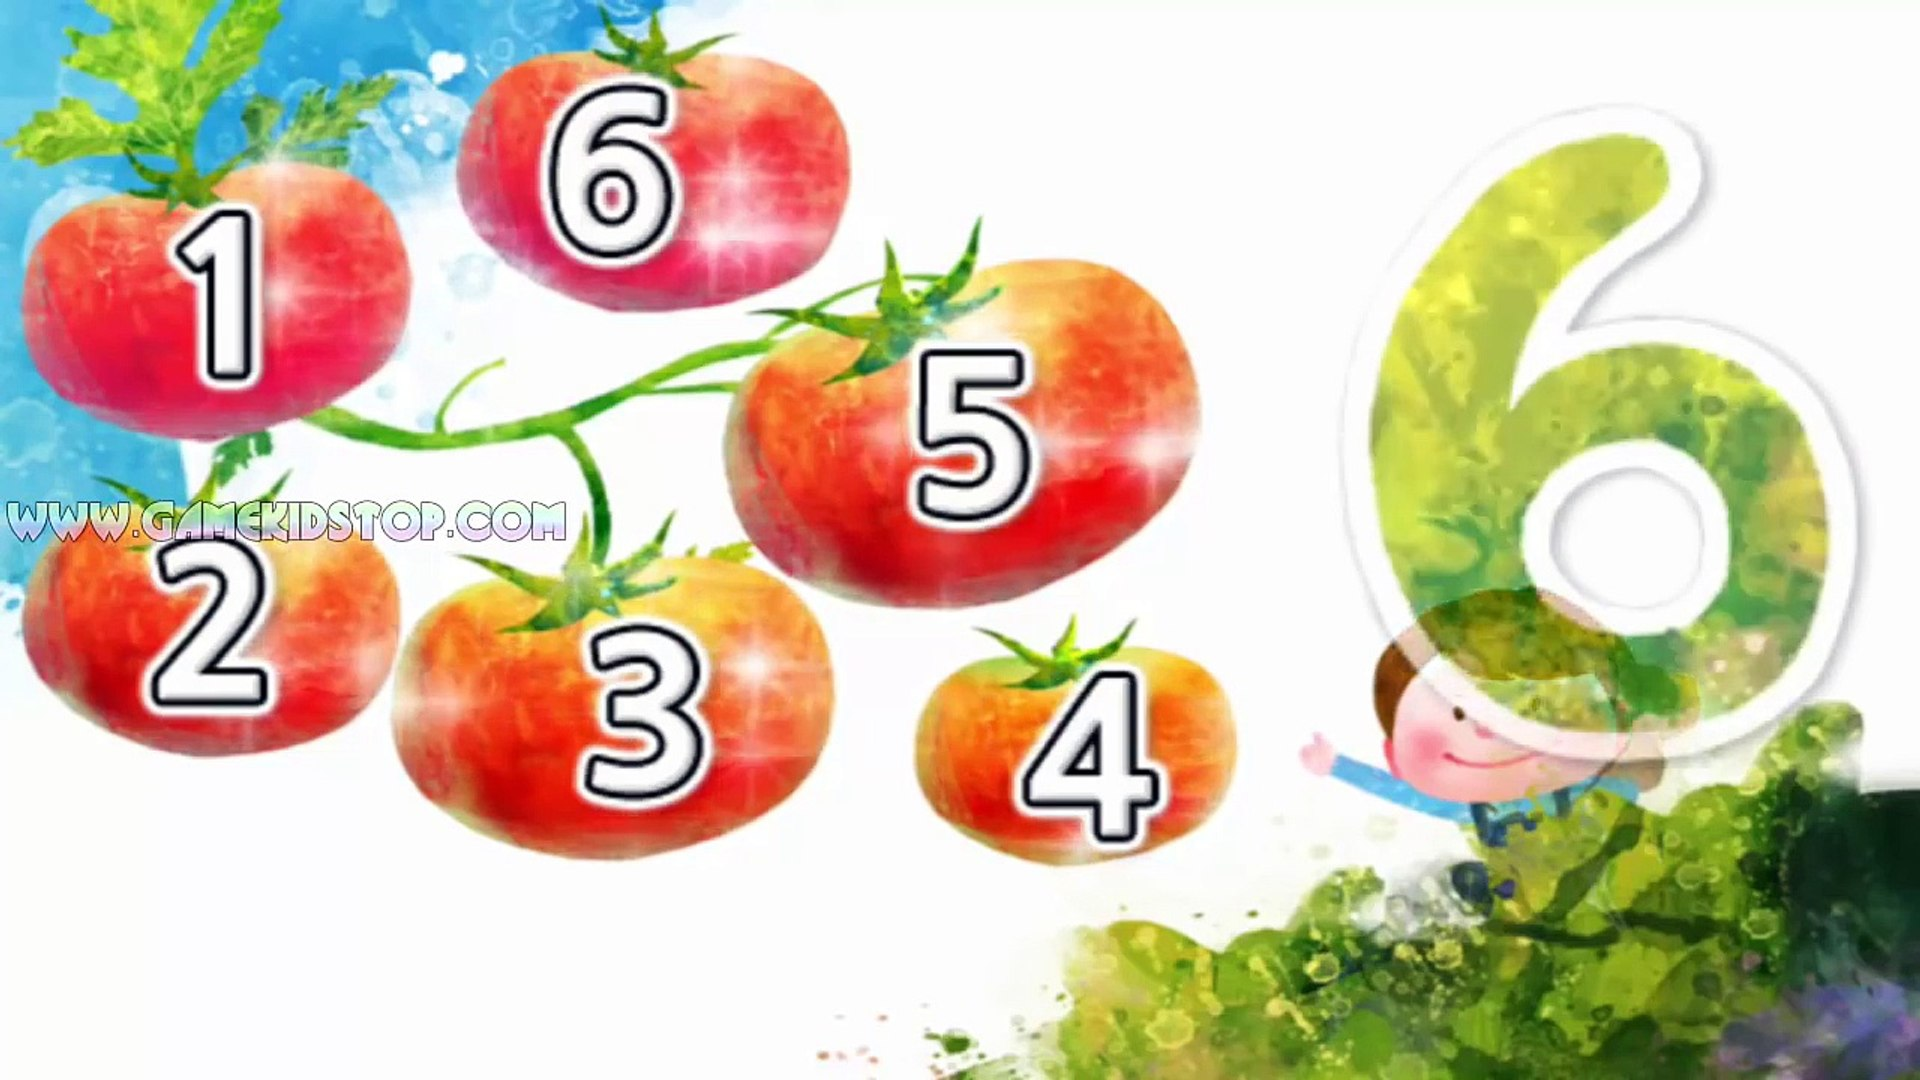 Learn counting Number 1 to 10 games for kids android app - App free Education for Kids